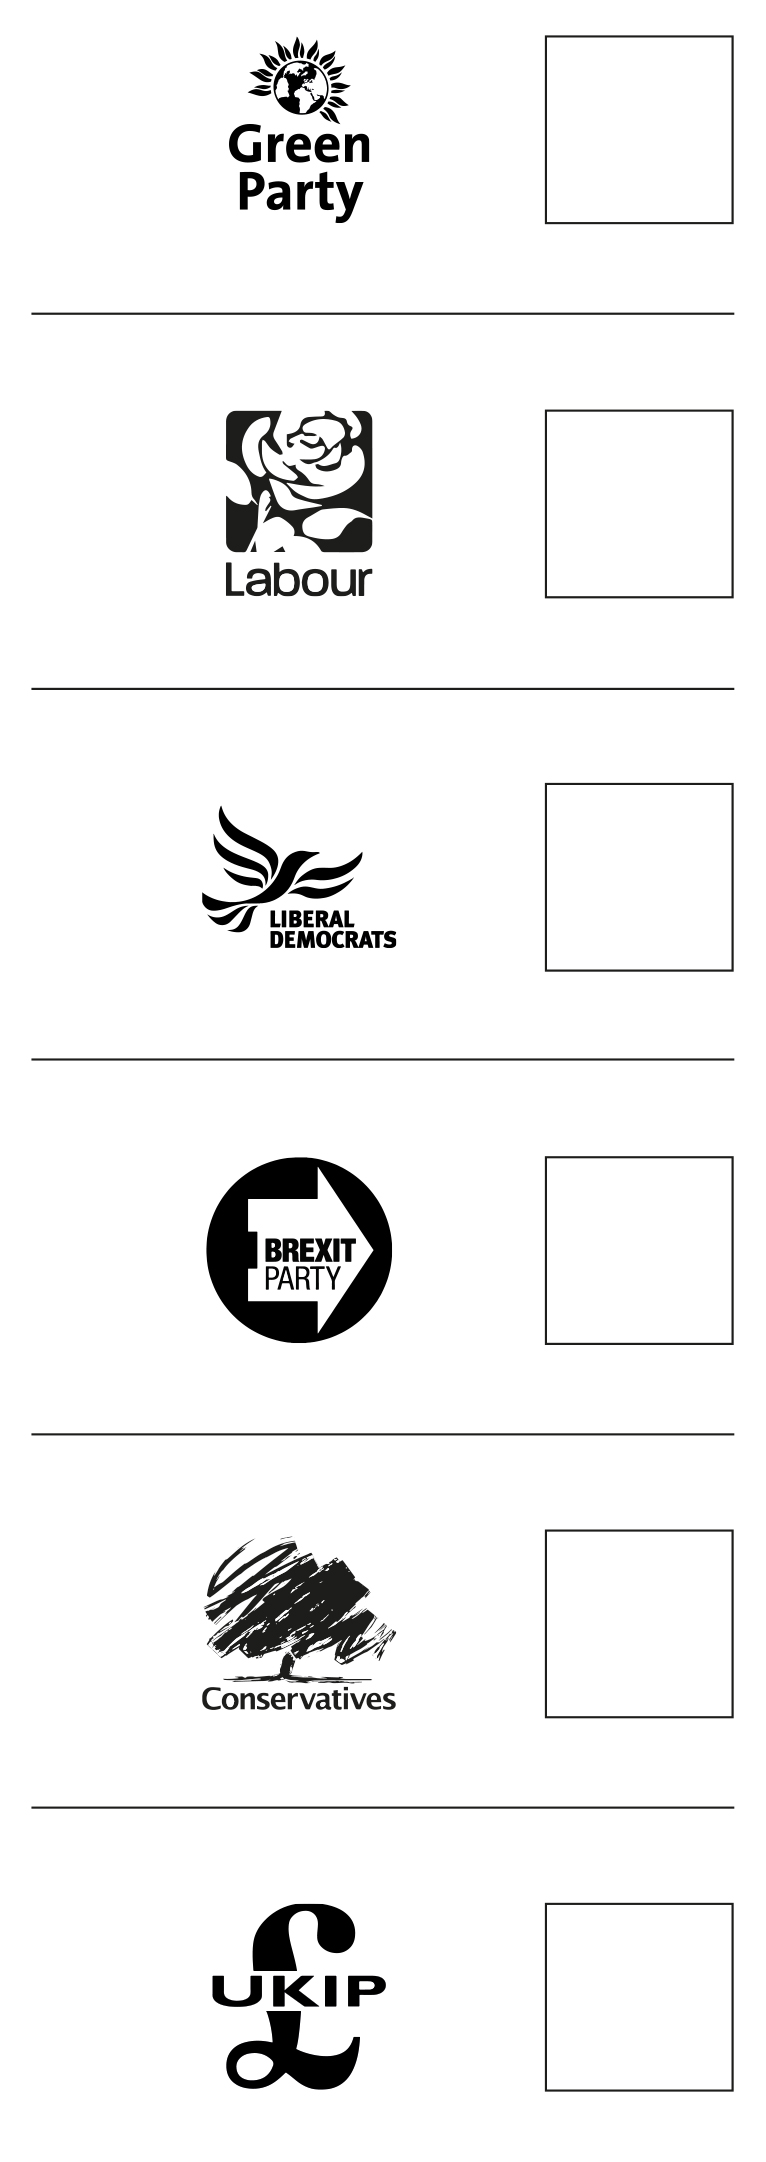 The Brexit Party logo